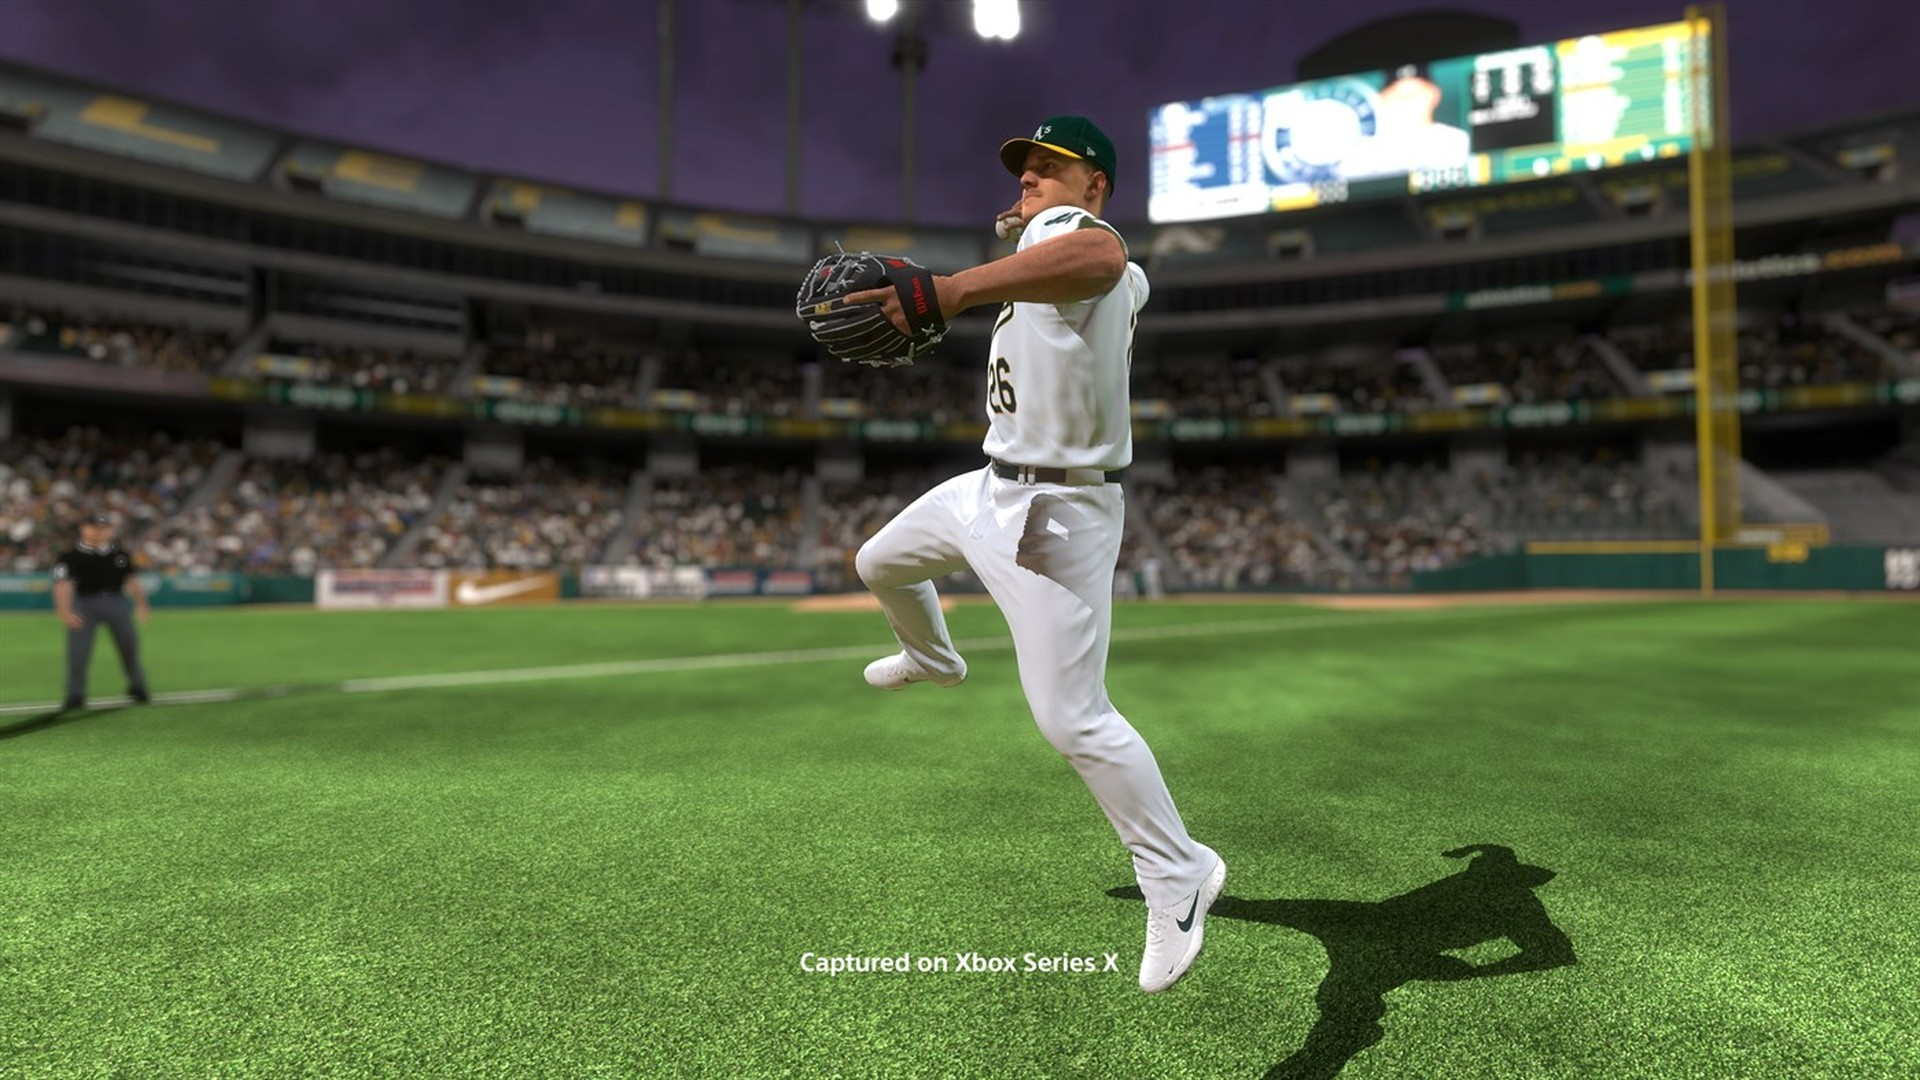 MLB The Show 21 Digital Deluxe Edition – April 16 – Optimized for Xbox Series X|S